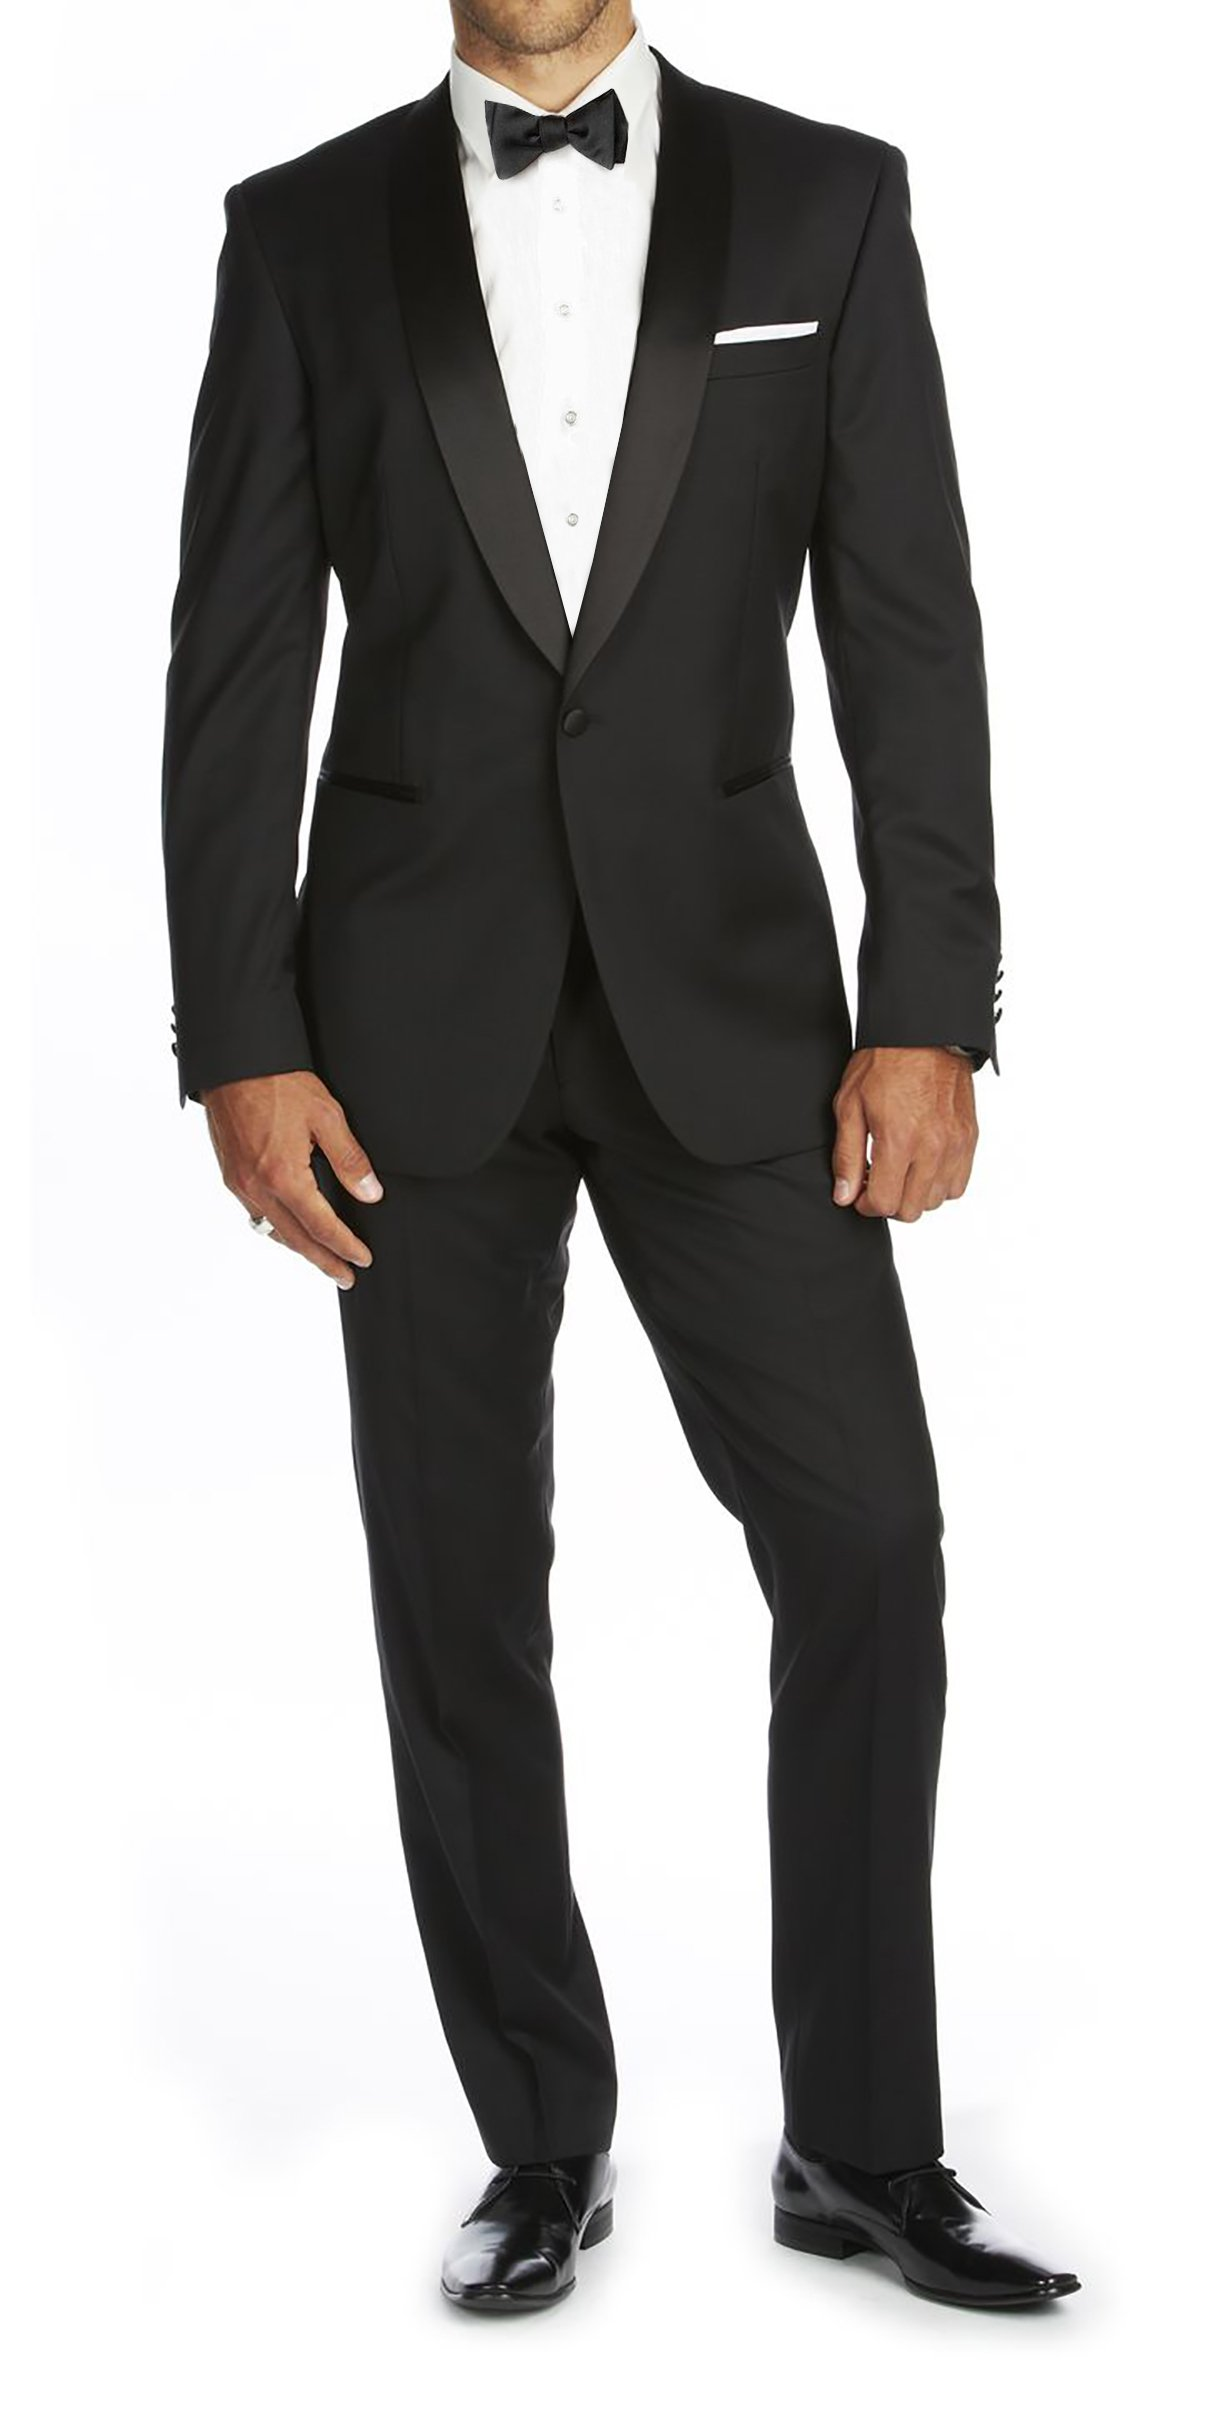 Braveman Mens Shawl Lapel Runway 2 Piece Tuxedo, Black, Size 34Sx28W by Braveman